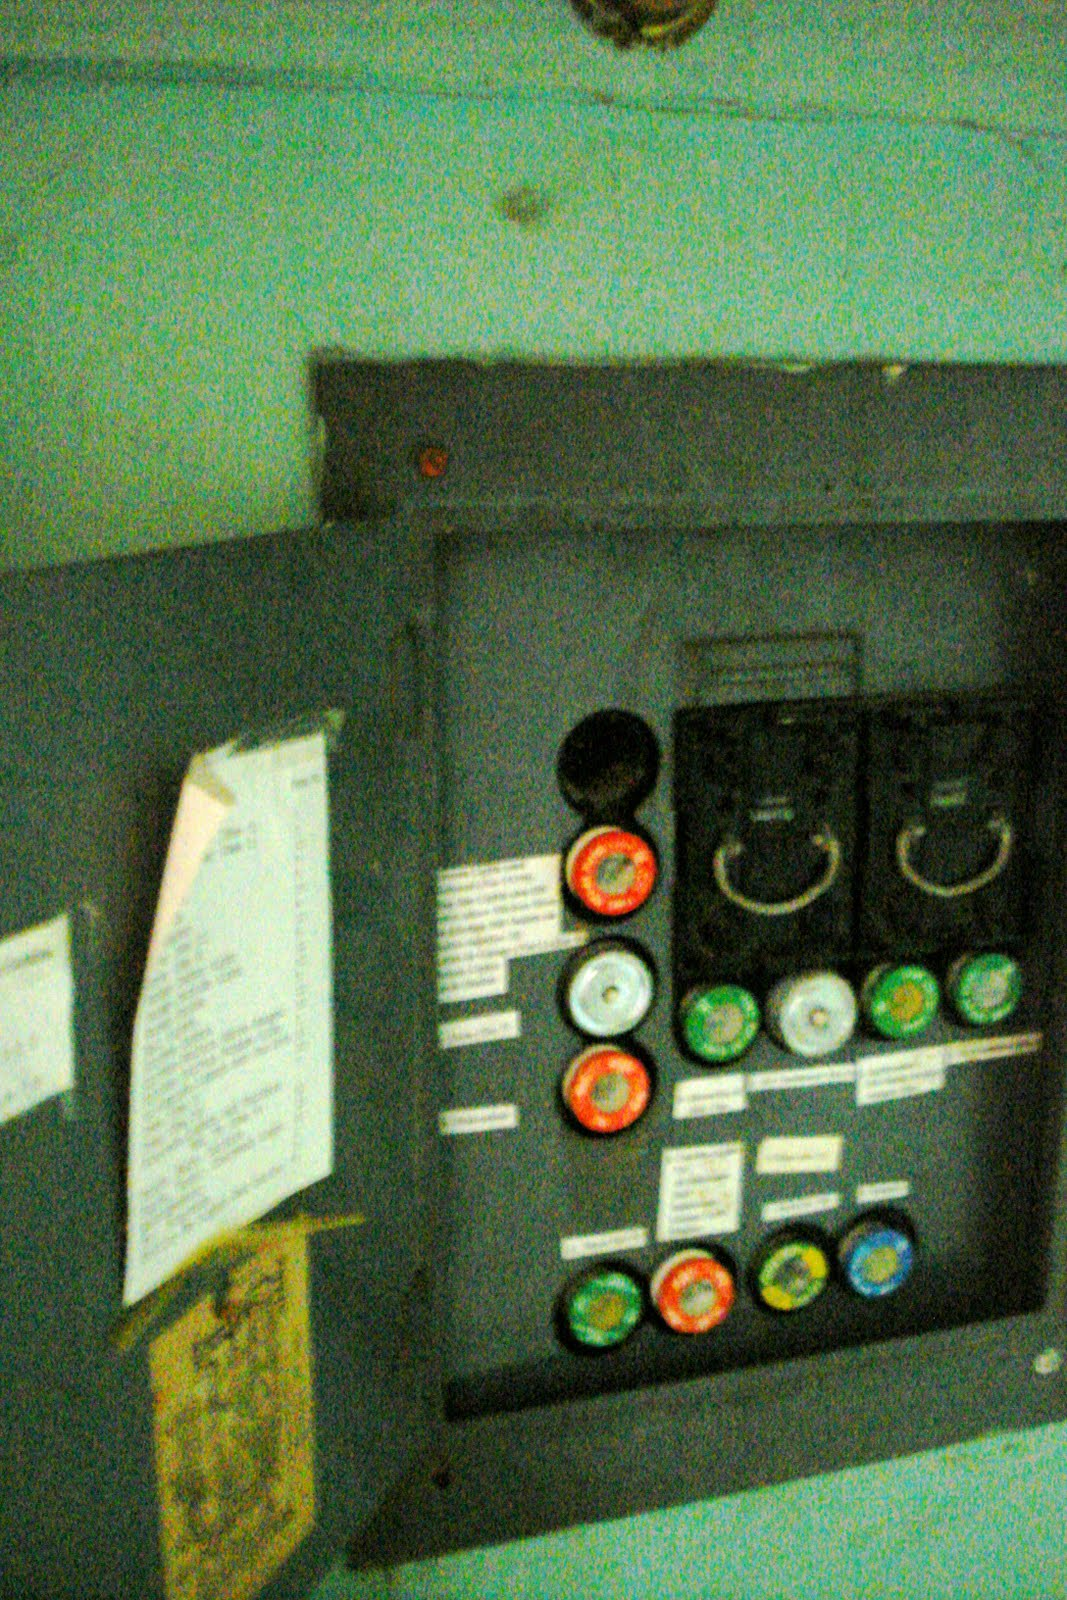 The Siami Project Aggressive 2011 Old Style Residential Fuse Box At Least This Caused Us To Learn About How Use School House Doesnt Have A Circuit Breaker But Instead With Actual